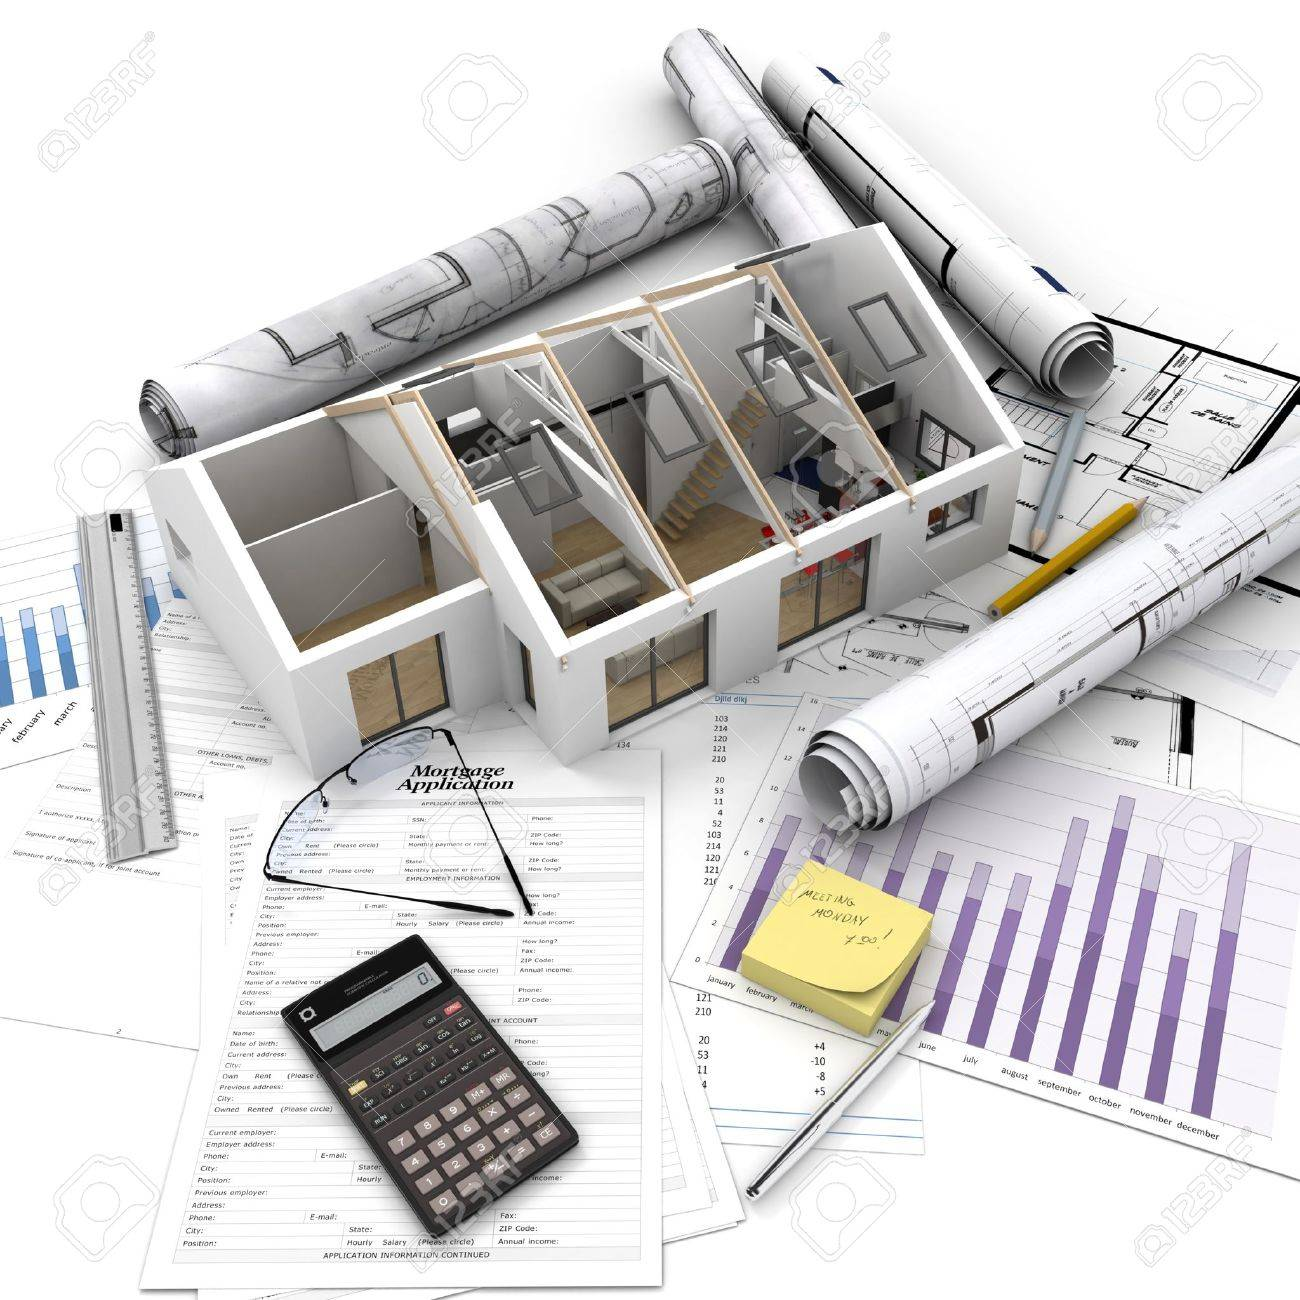 A house on top of a table with mortgage application form, calculator, blueprints, etc.. Stock Photo - 19979983